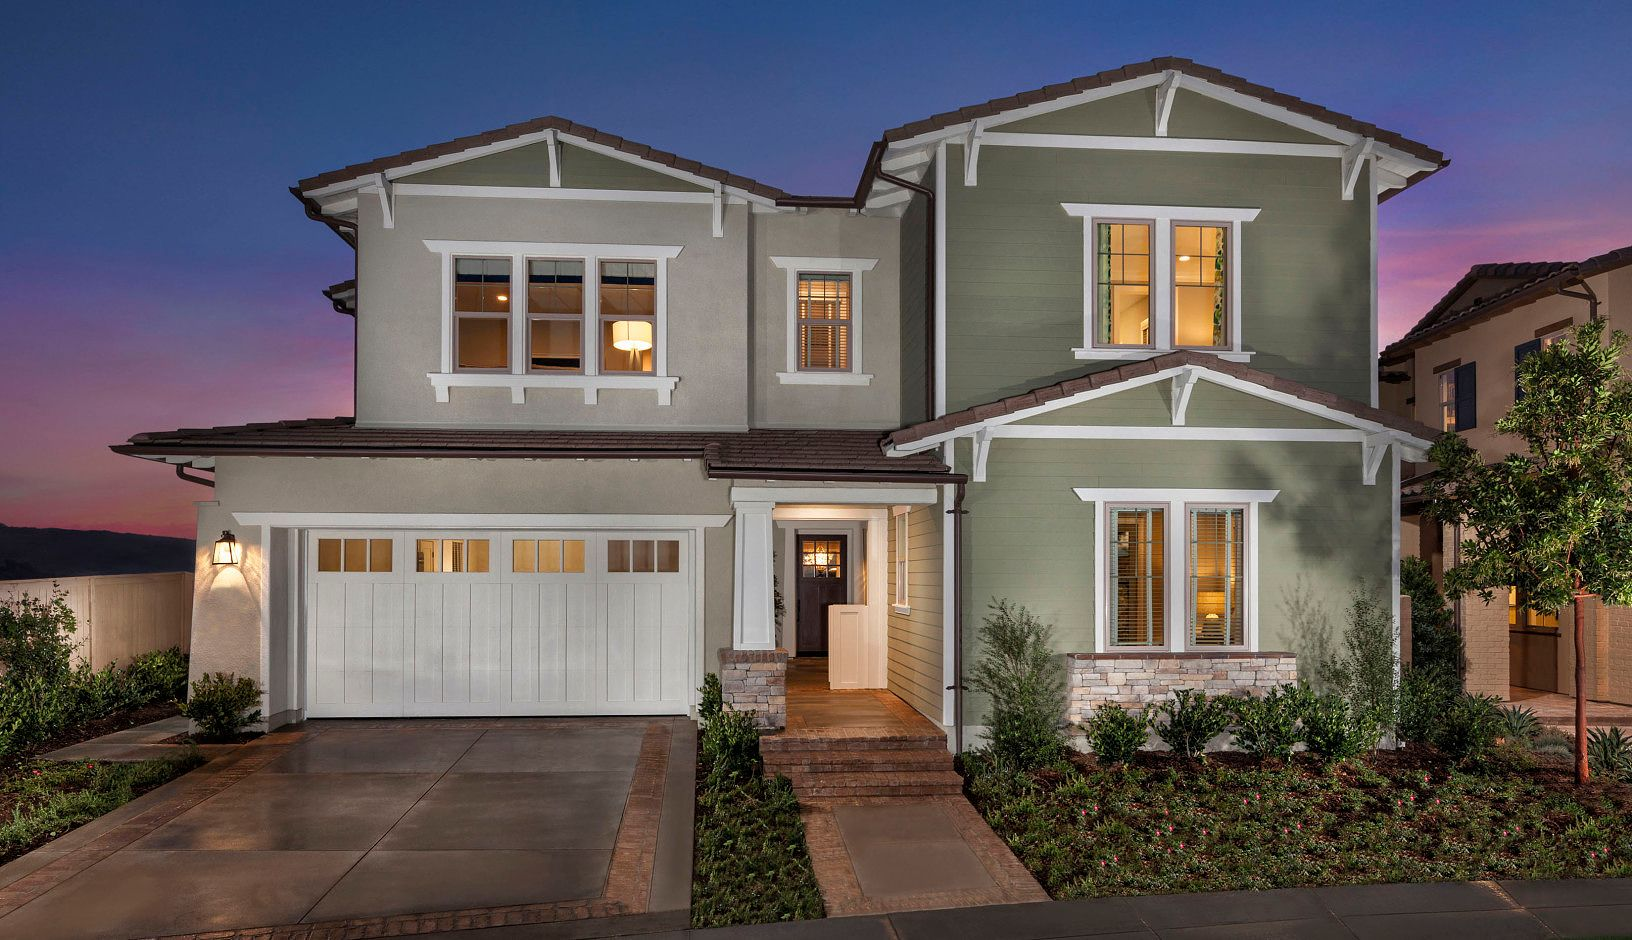 Single Family for Sale at Aubergine At Esencia - Residence 3 8 Cadencia Street Rancho Mission Viejo, California 92694 United States